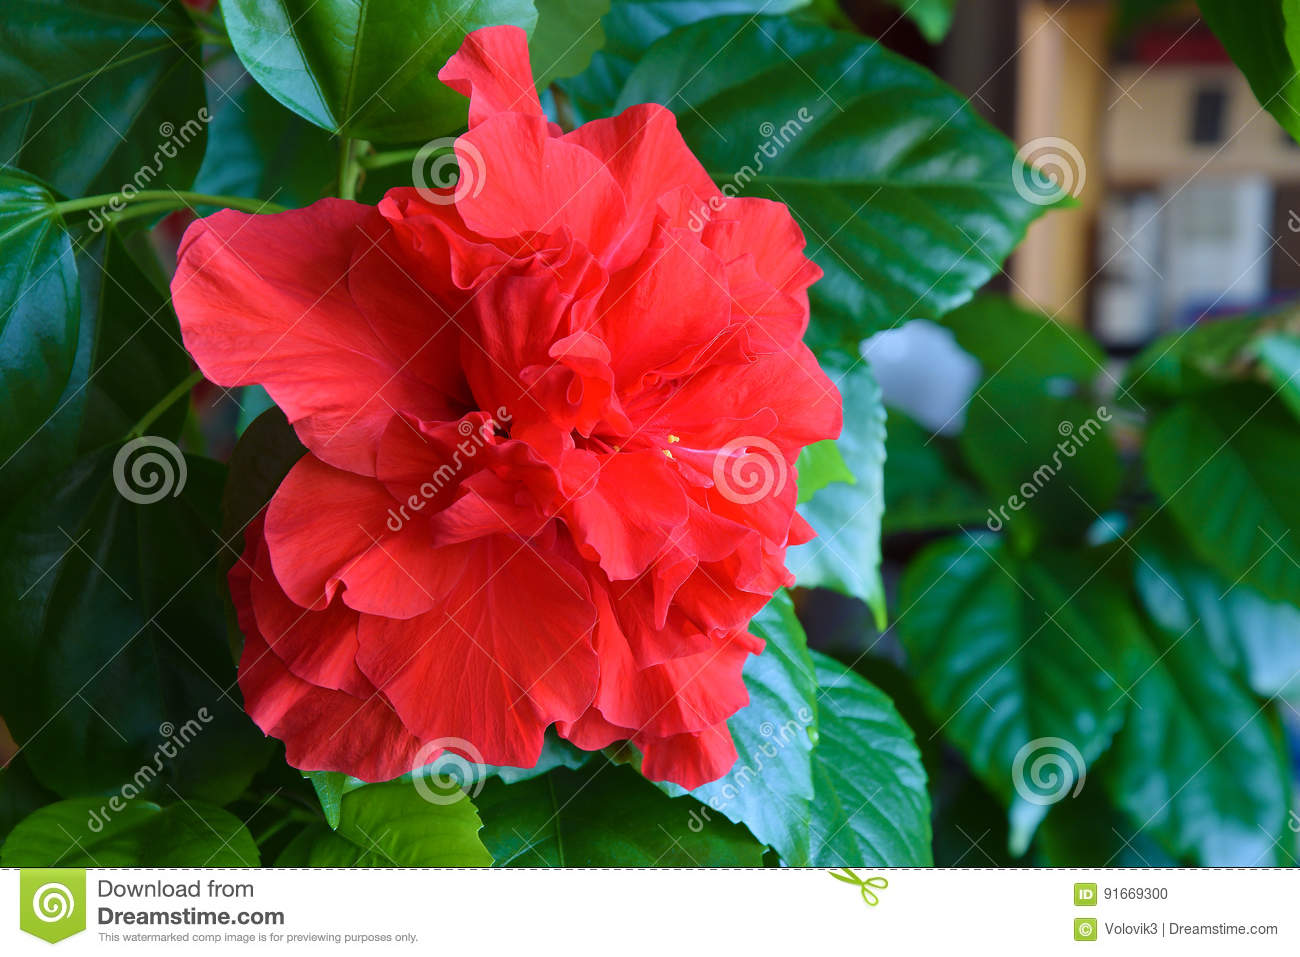 House Plant Hibiscus - Chinese Rose. Stock Photo - Image of ... on windmill palm house plant, periwinkle house plant, lantana house plant, baobab house plant, cereus house plant, pineapple house plant, papaya house plant, kentia palm house plant, acacia house plant, spanish moss house plant, mandevilla house plant, orange house plant, taro house plant, cinnamon house plant, bottle palm house plant, cabbage house plant, vanilla house plant, sorrel house plant, blue ginger house plant, colocasia house plant,